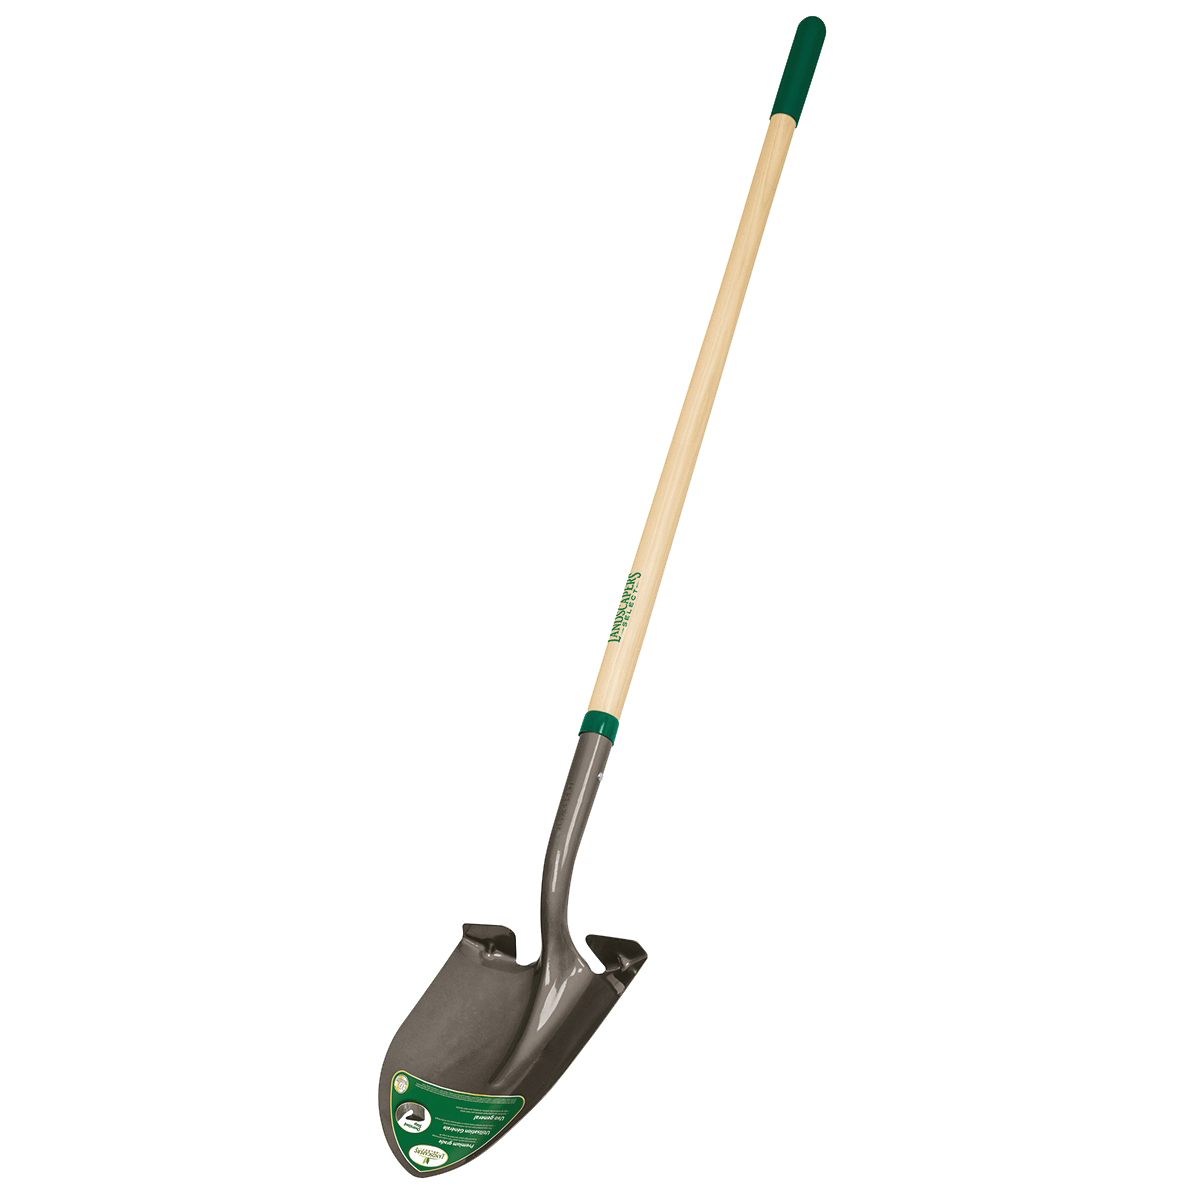 Picture of Landscapers Select 34602 Shovel, 16 ga Gauge, Wood Handle, Cushion Grip Handle, 48 in L Handle